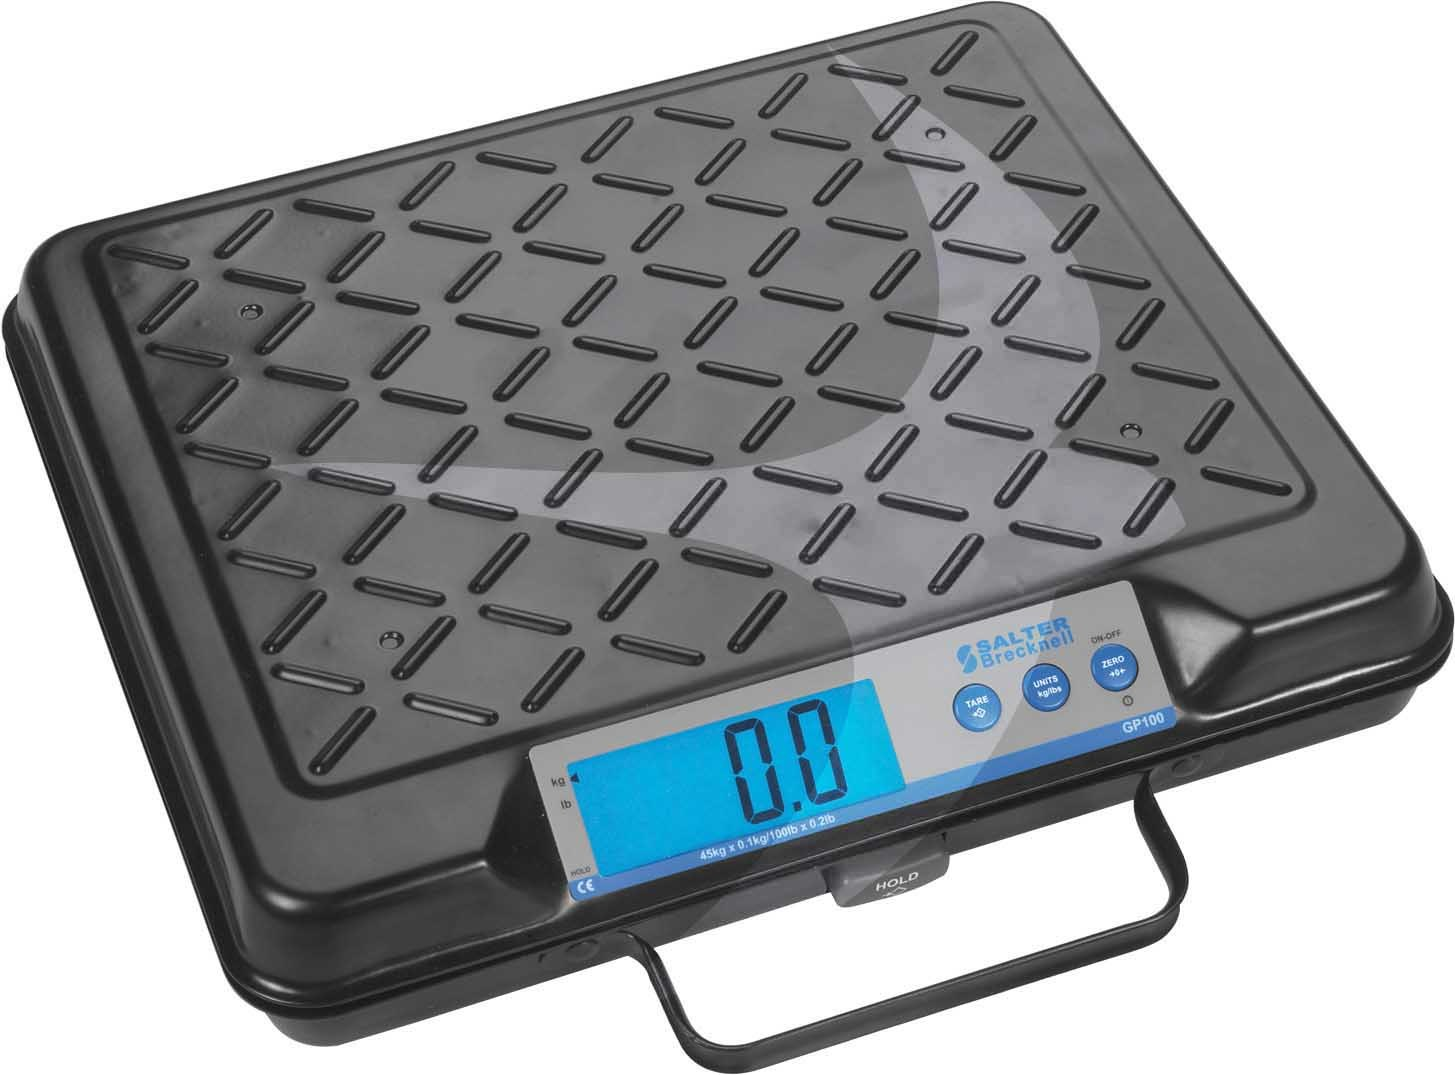 Portable Parcel Scale 278x318mm Up to 45Kg